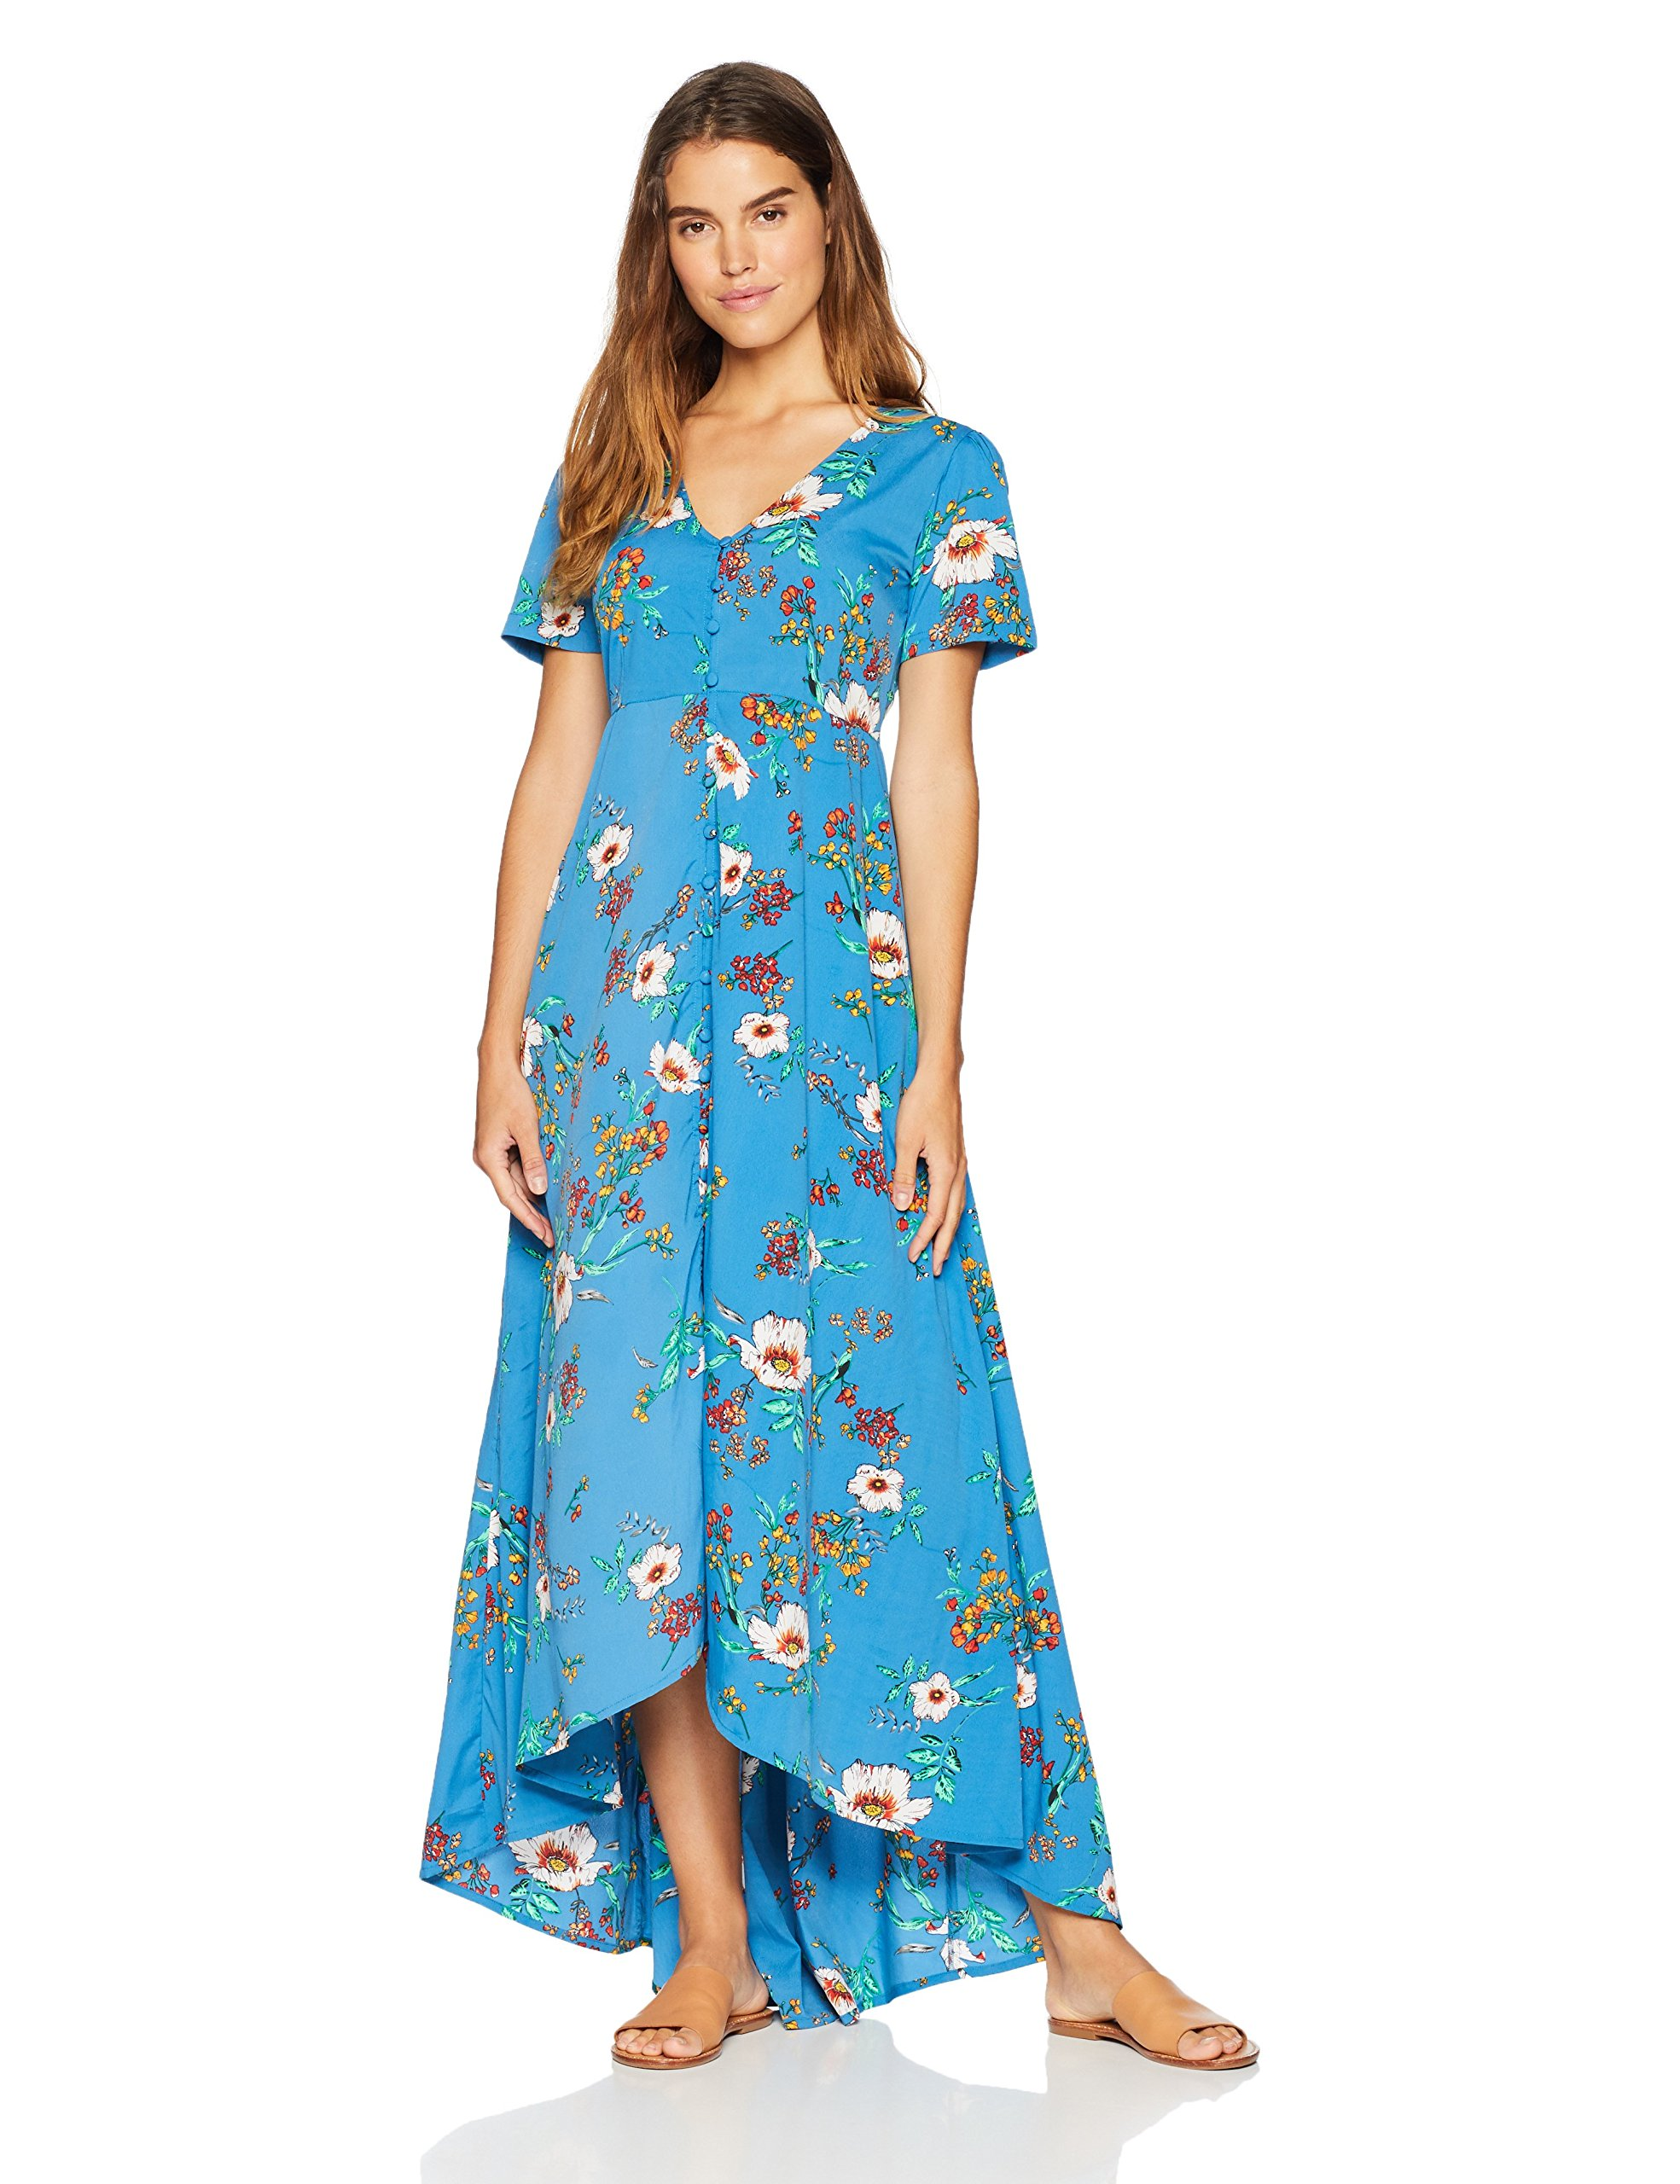 Available at Amazon: Wild Oasis Beachwear Women's Short Sleeves Floral Printed Maxi Dress with Button Detailing & Slit